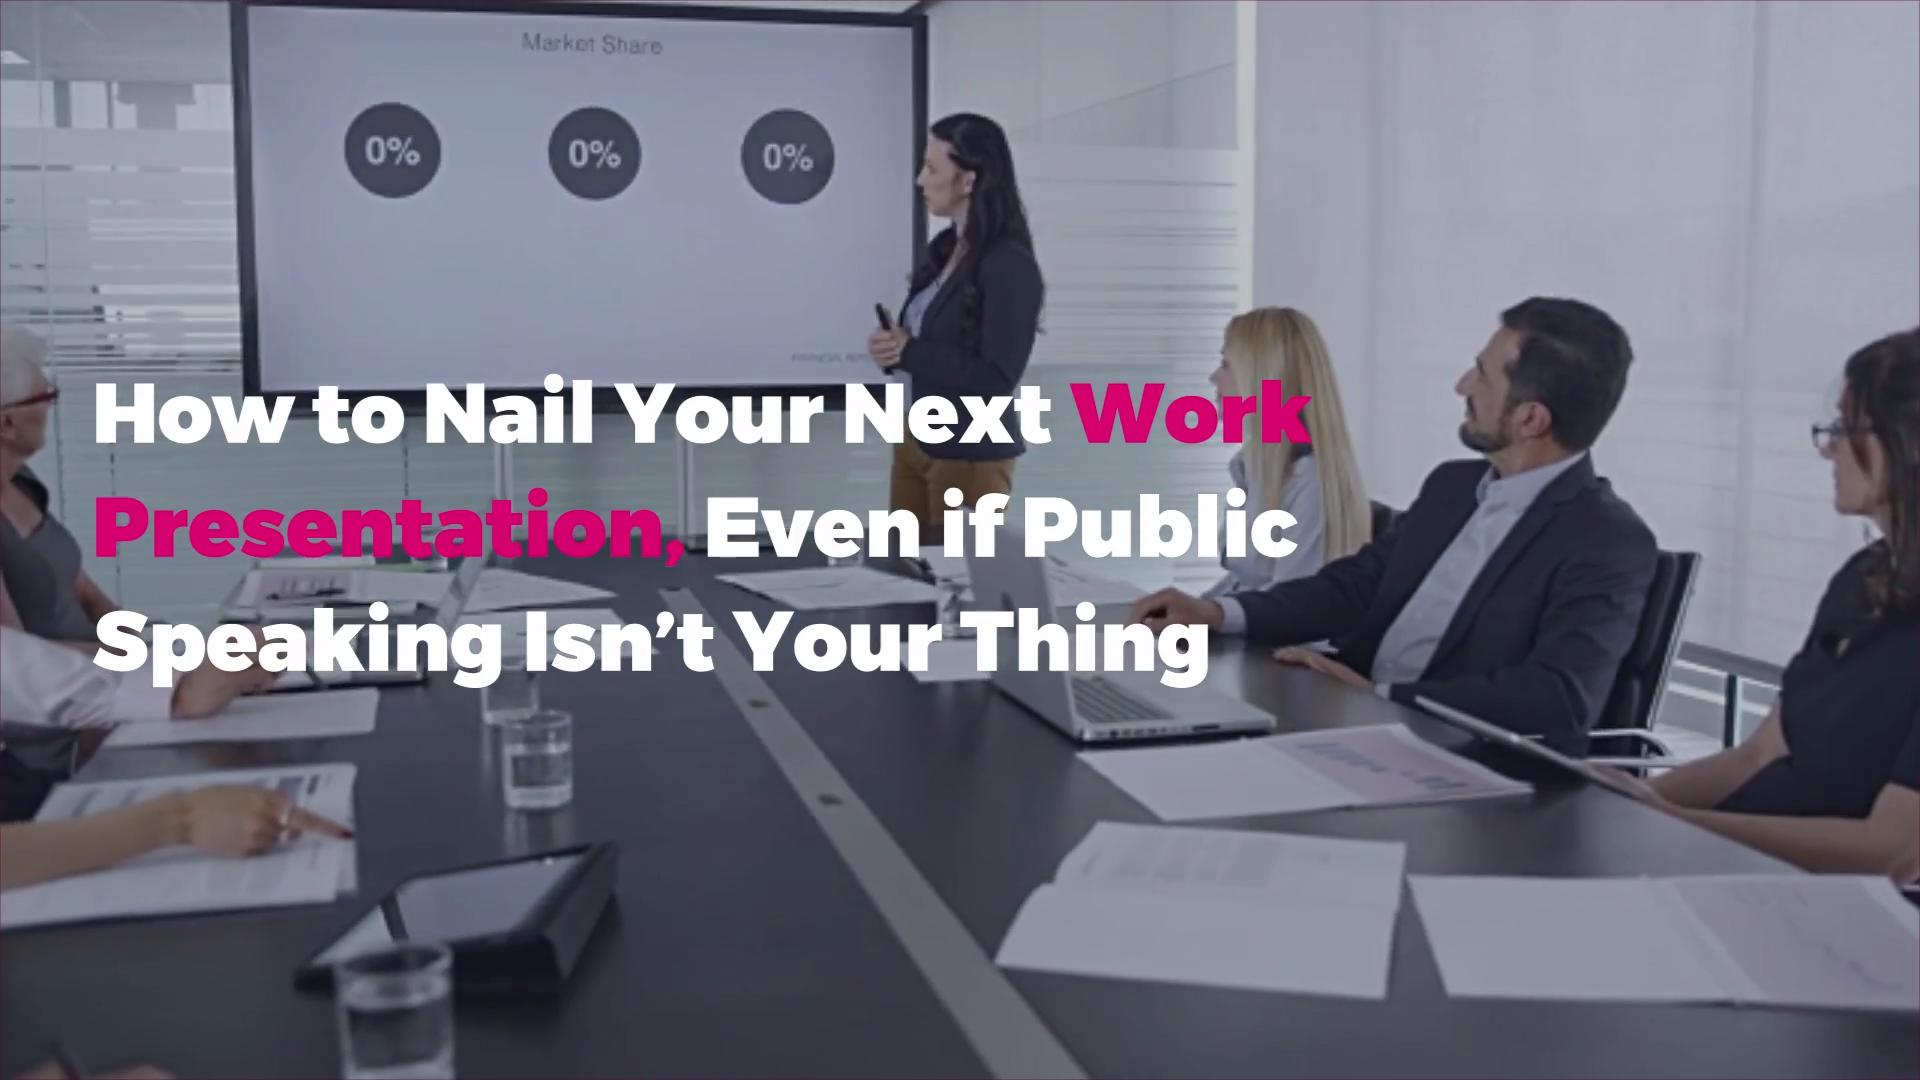 How to Nail Your Next Work Presentation, Even if Public Speaking